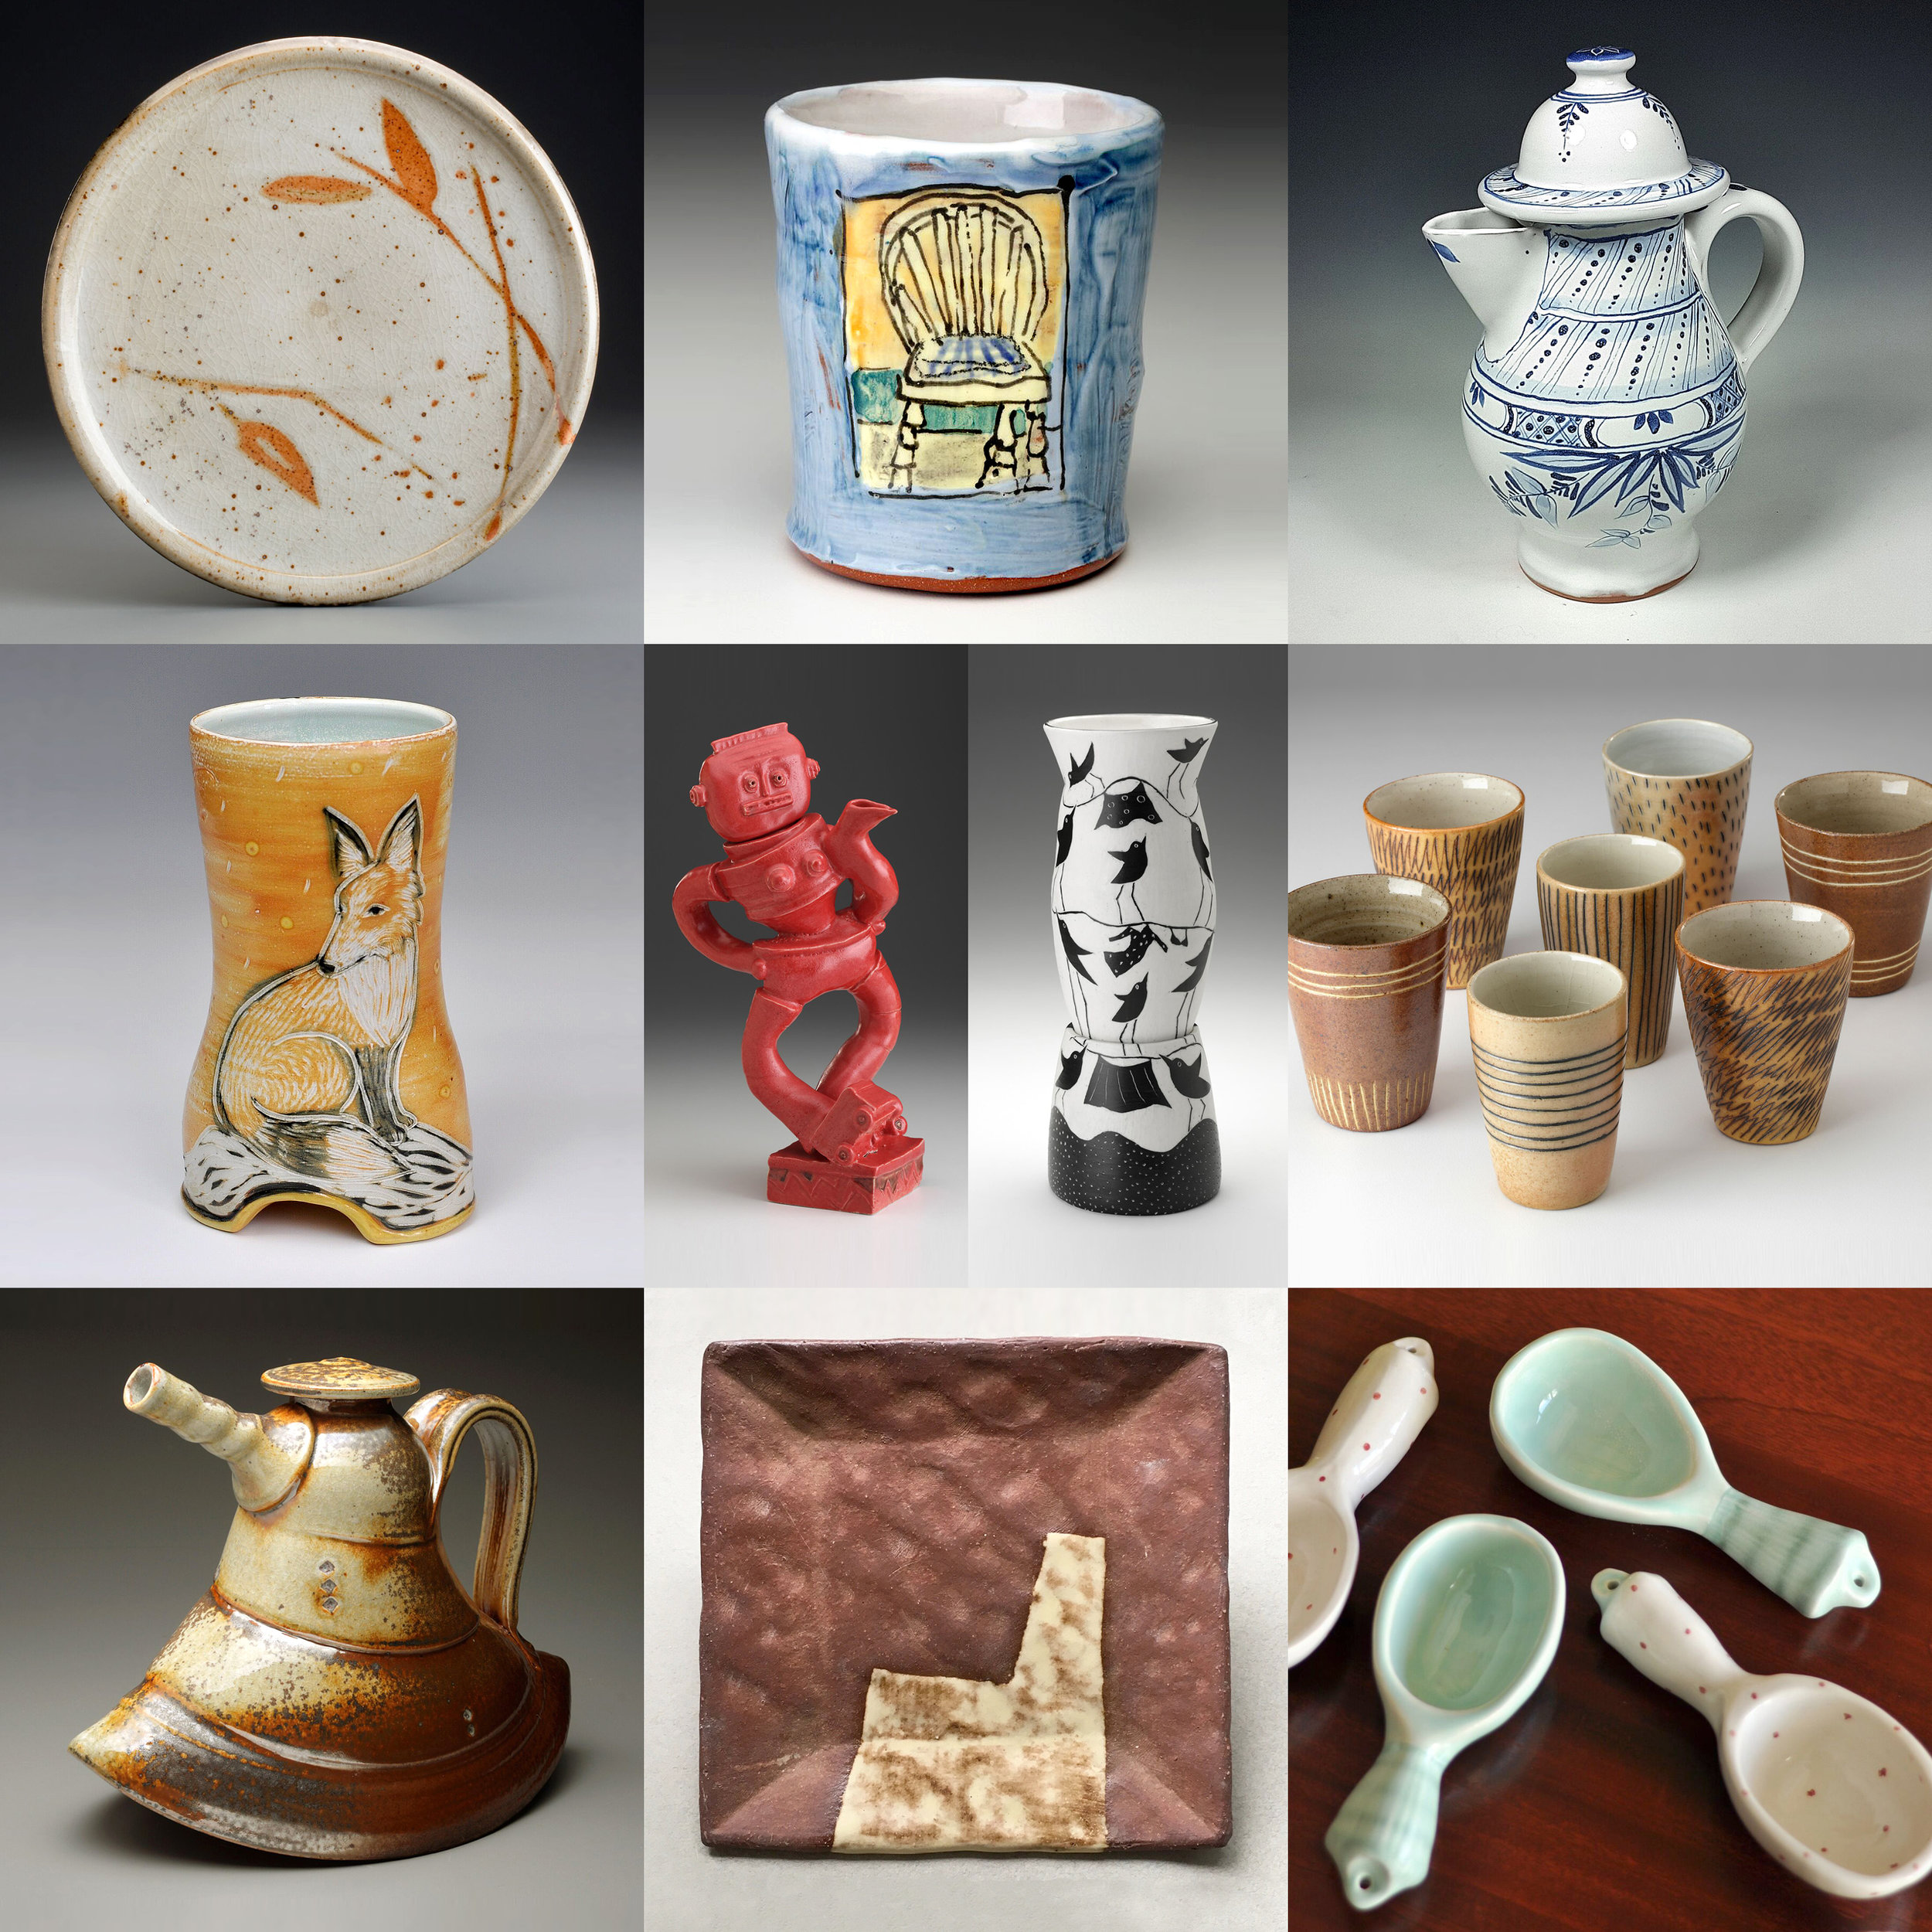 14th Annual Asparagus Valley Pottery Trail - April 28-29, 2018, Western MassachusettsAsparagus Valley Pottery TrailA tour of 9 studios, with 23 potters, throughout the Pioneer Valley. See our brochure for more details: AVPG 2018 Pottery TrailSupported in part by a grant from the Pelham Cultural Council, a local agency which is supported by the Massachusetts Cultural Council, a State agency.